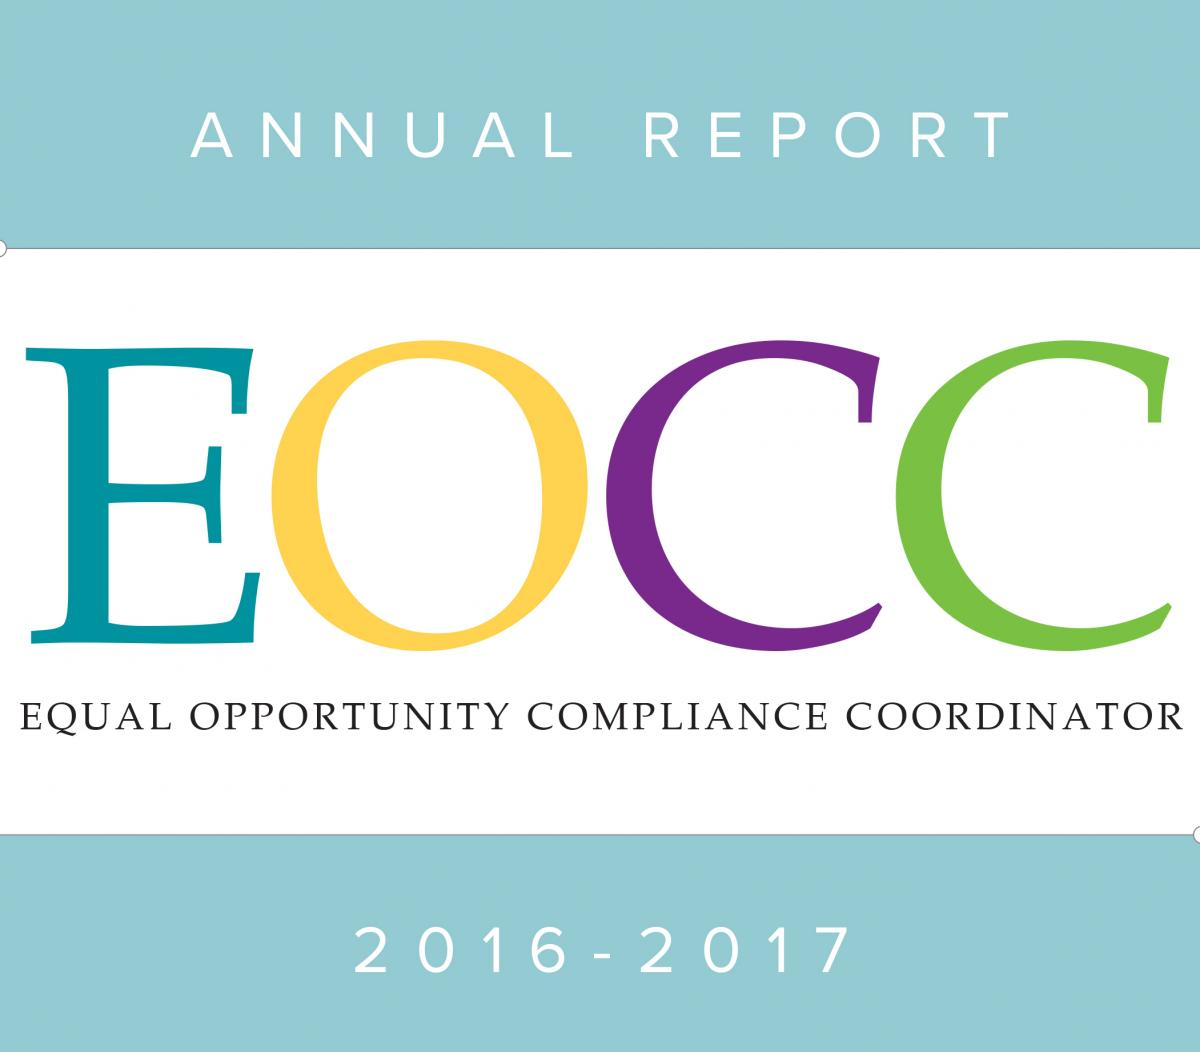 Equal Opportunity Compliance Coordinator (EOCC) Annual Report 2016-2017